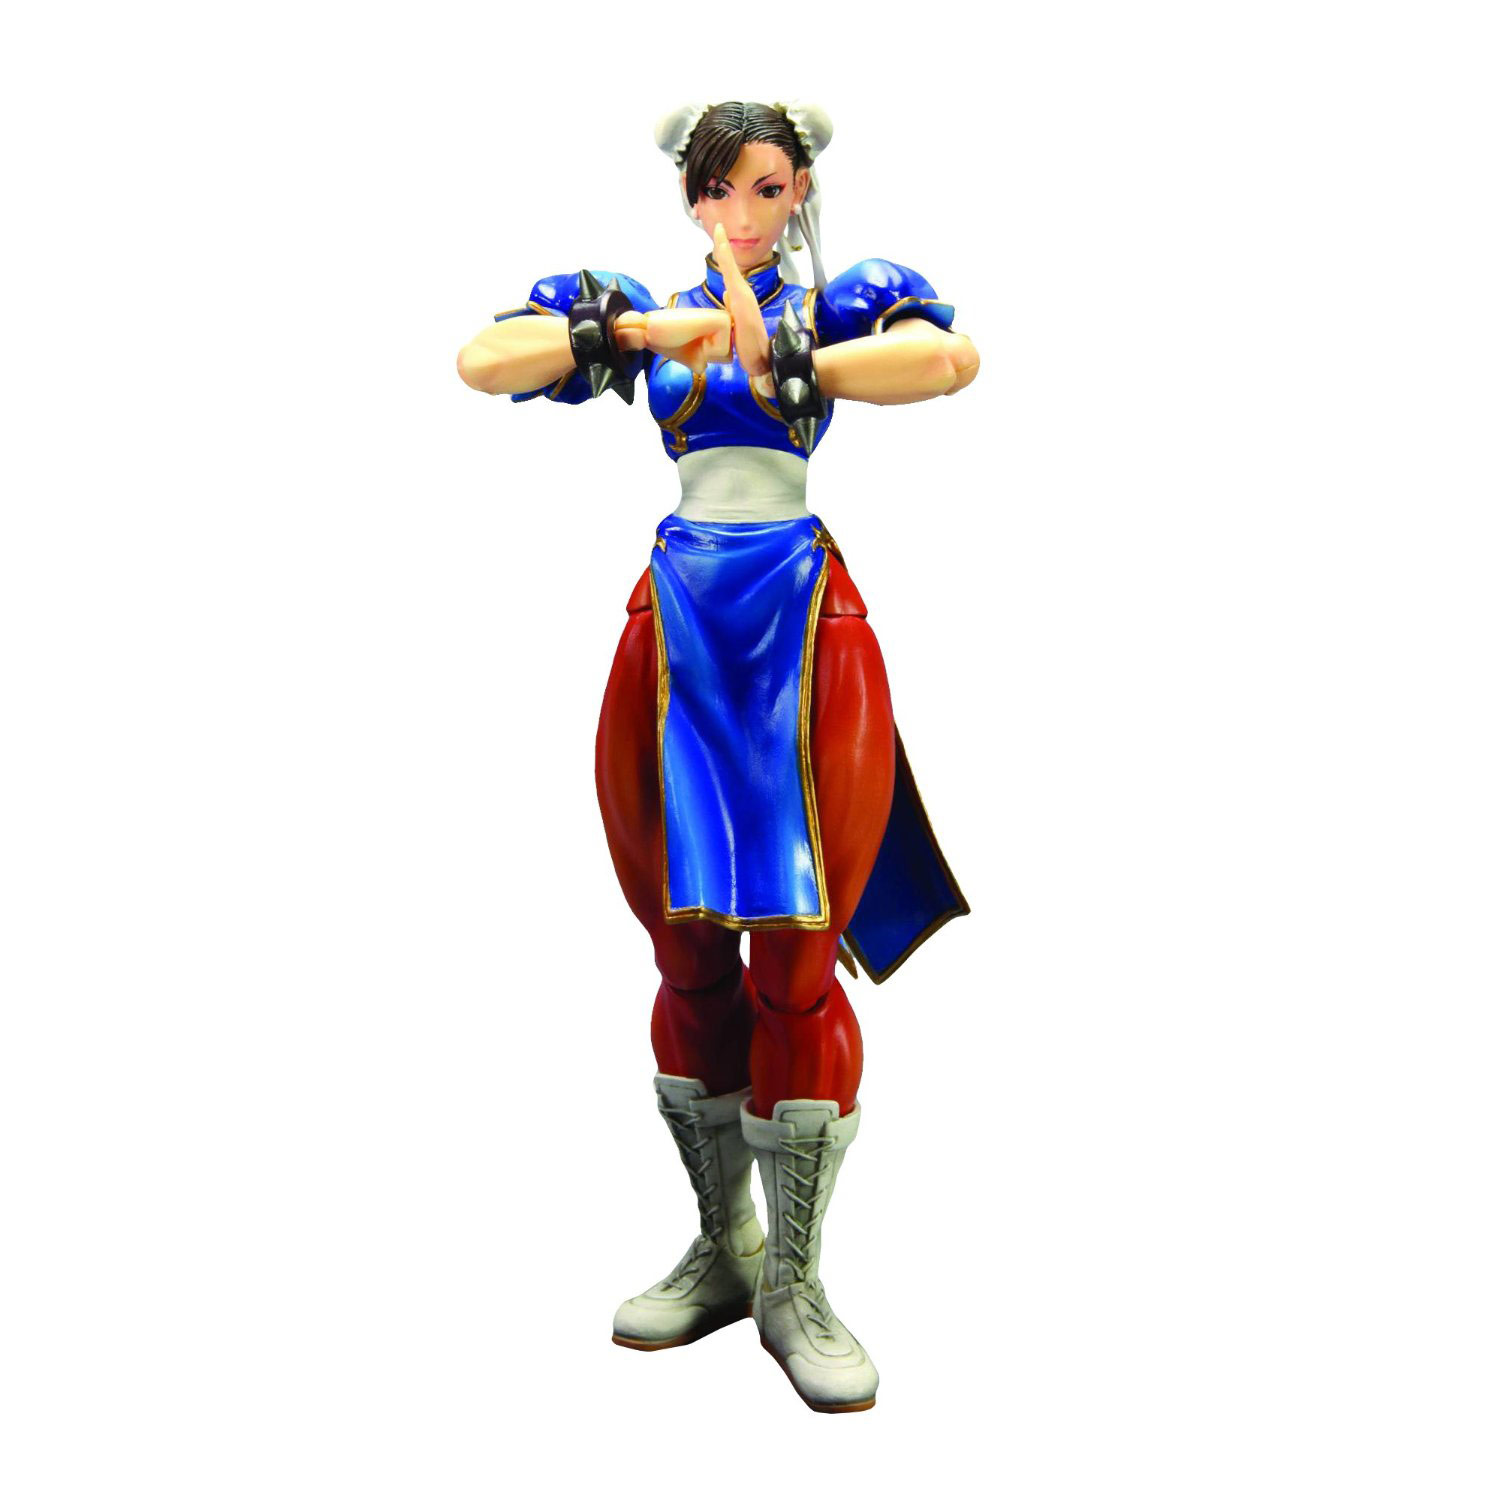 Chun-Li Street Fighter 4 Play Arts Kai action figure image #1